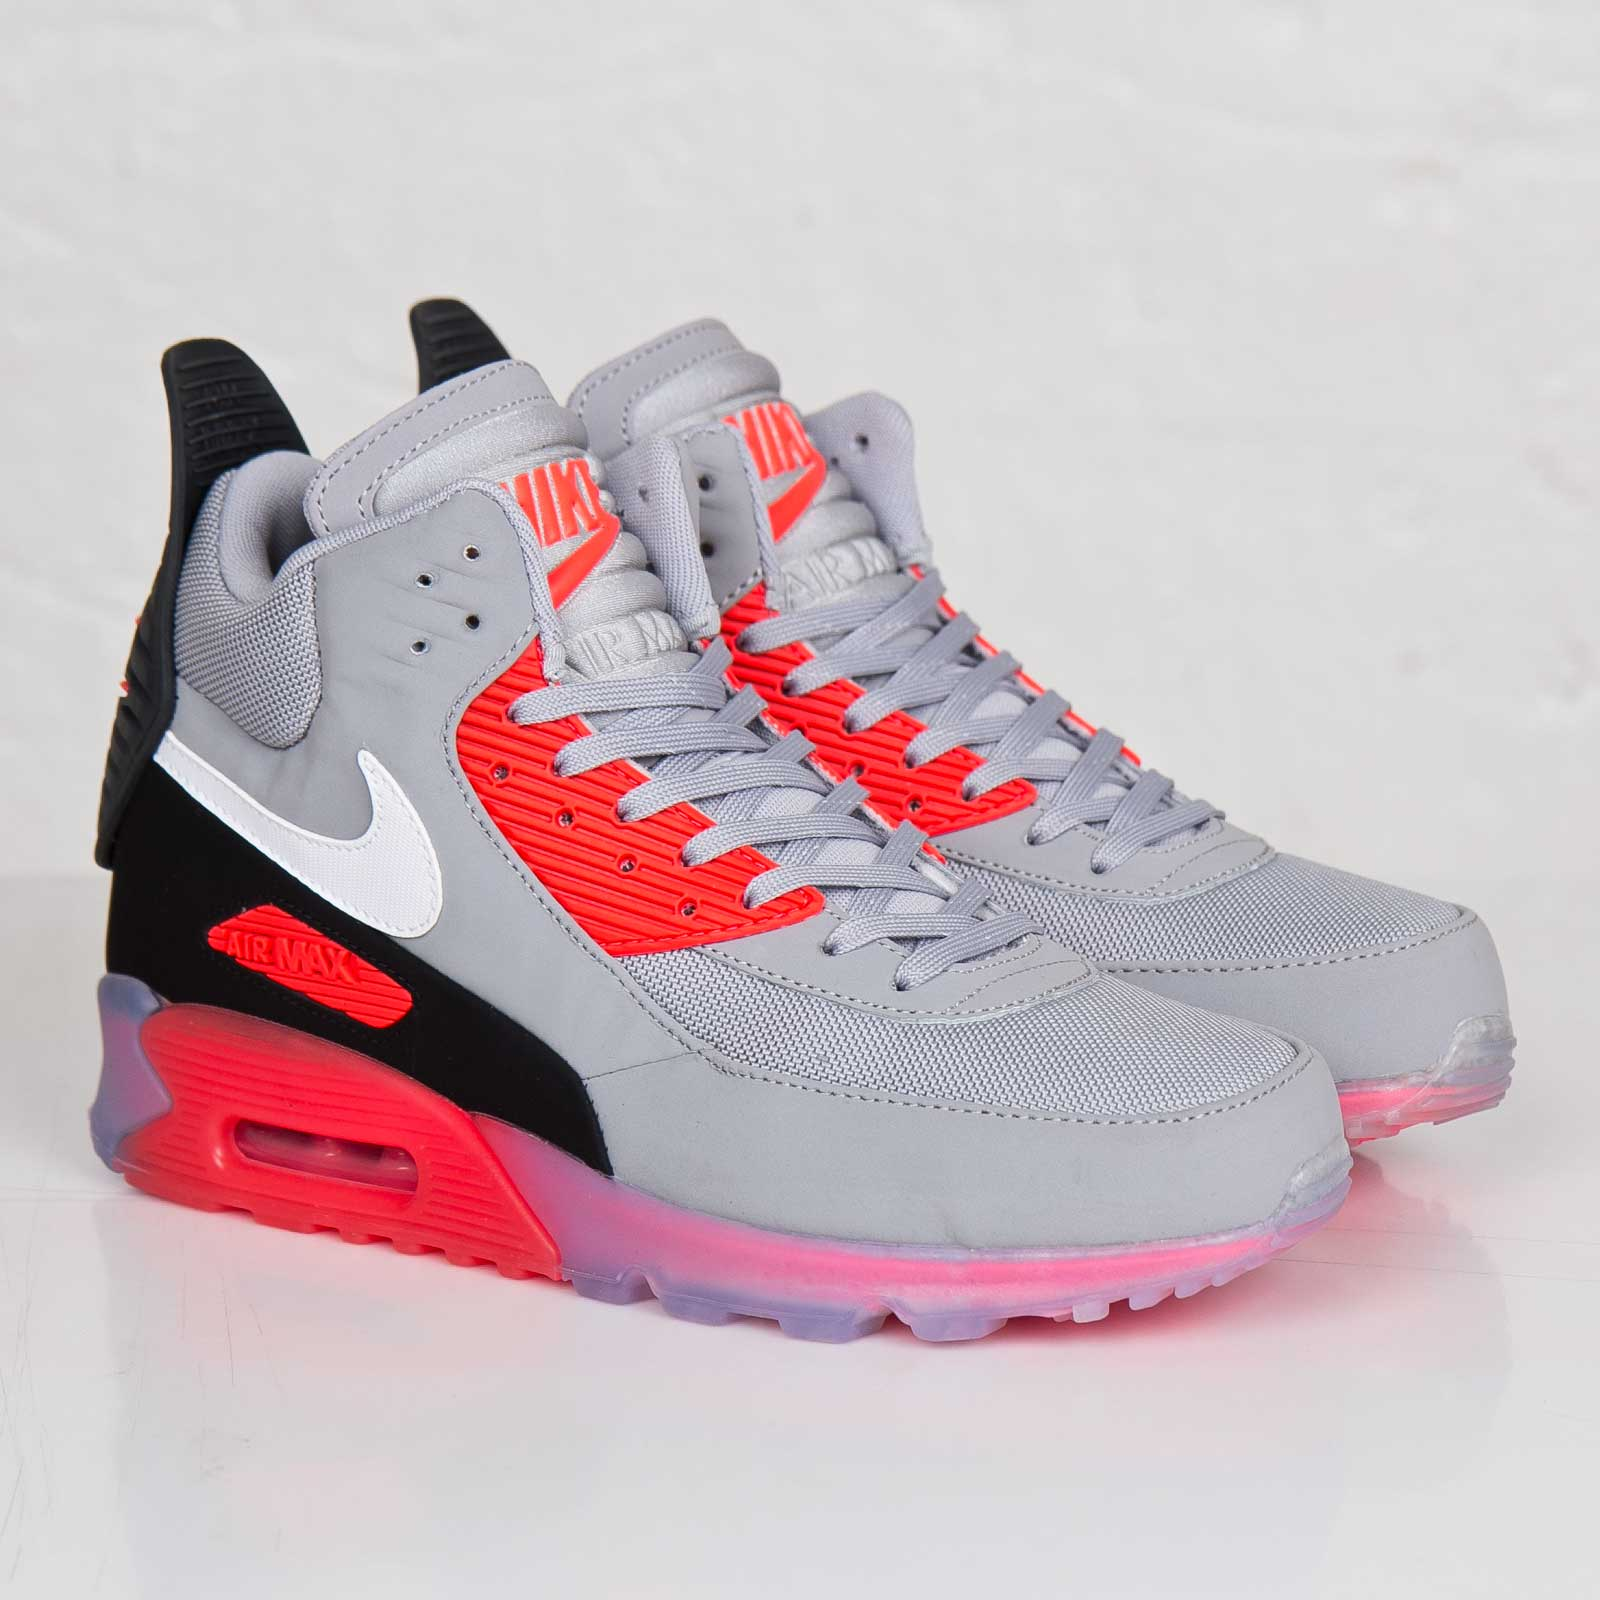 Nike Air Max 90 Sneakerboot Ice 684722 006